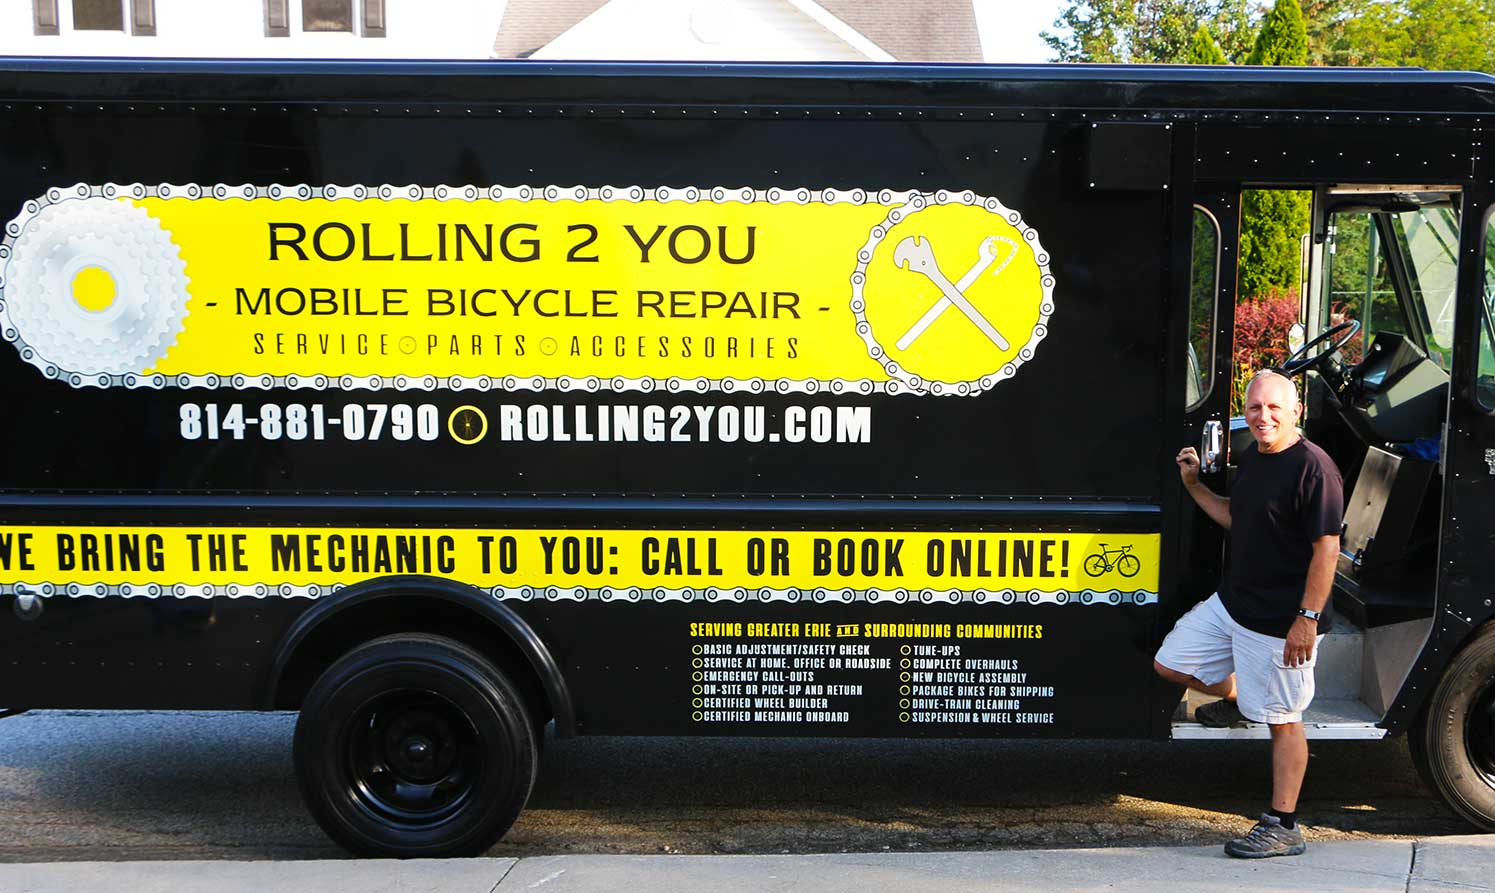 Bicycle repair near me